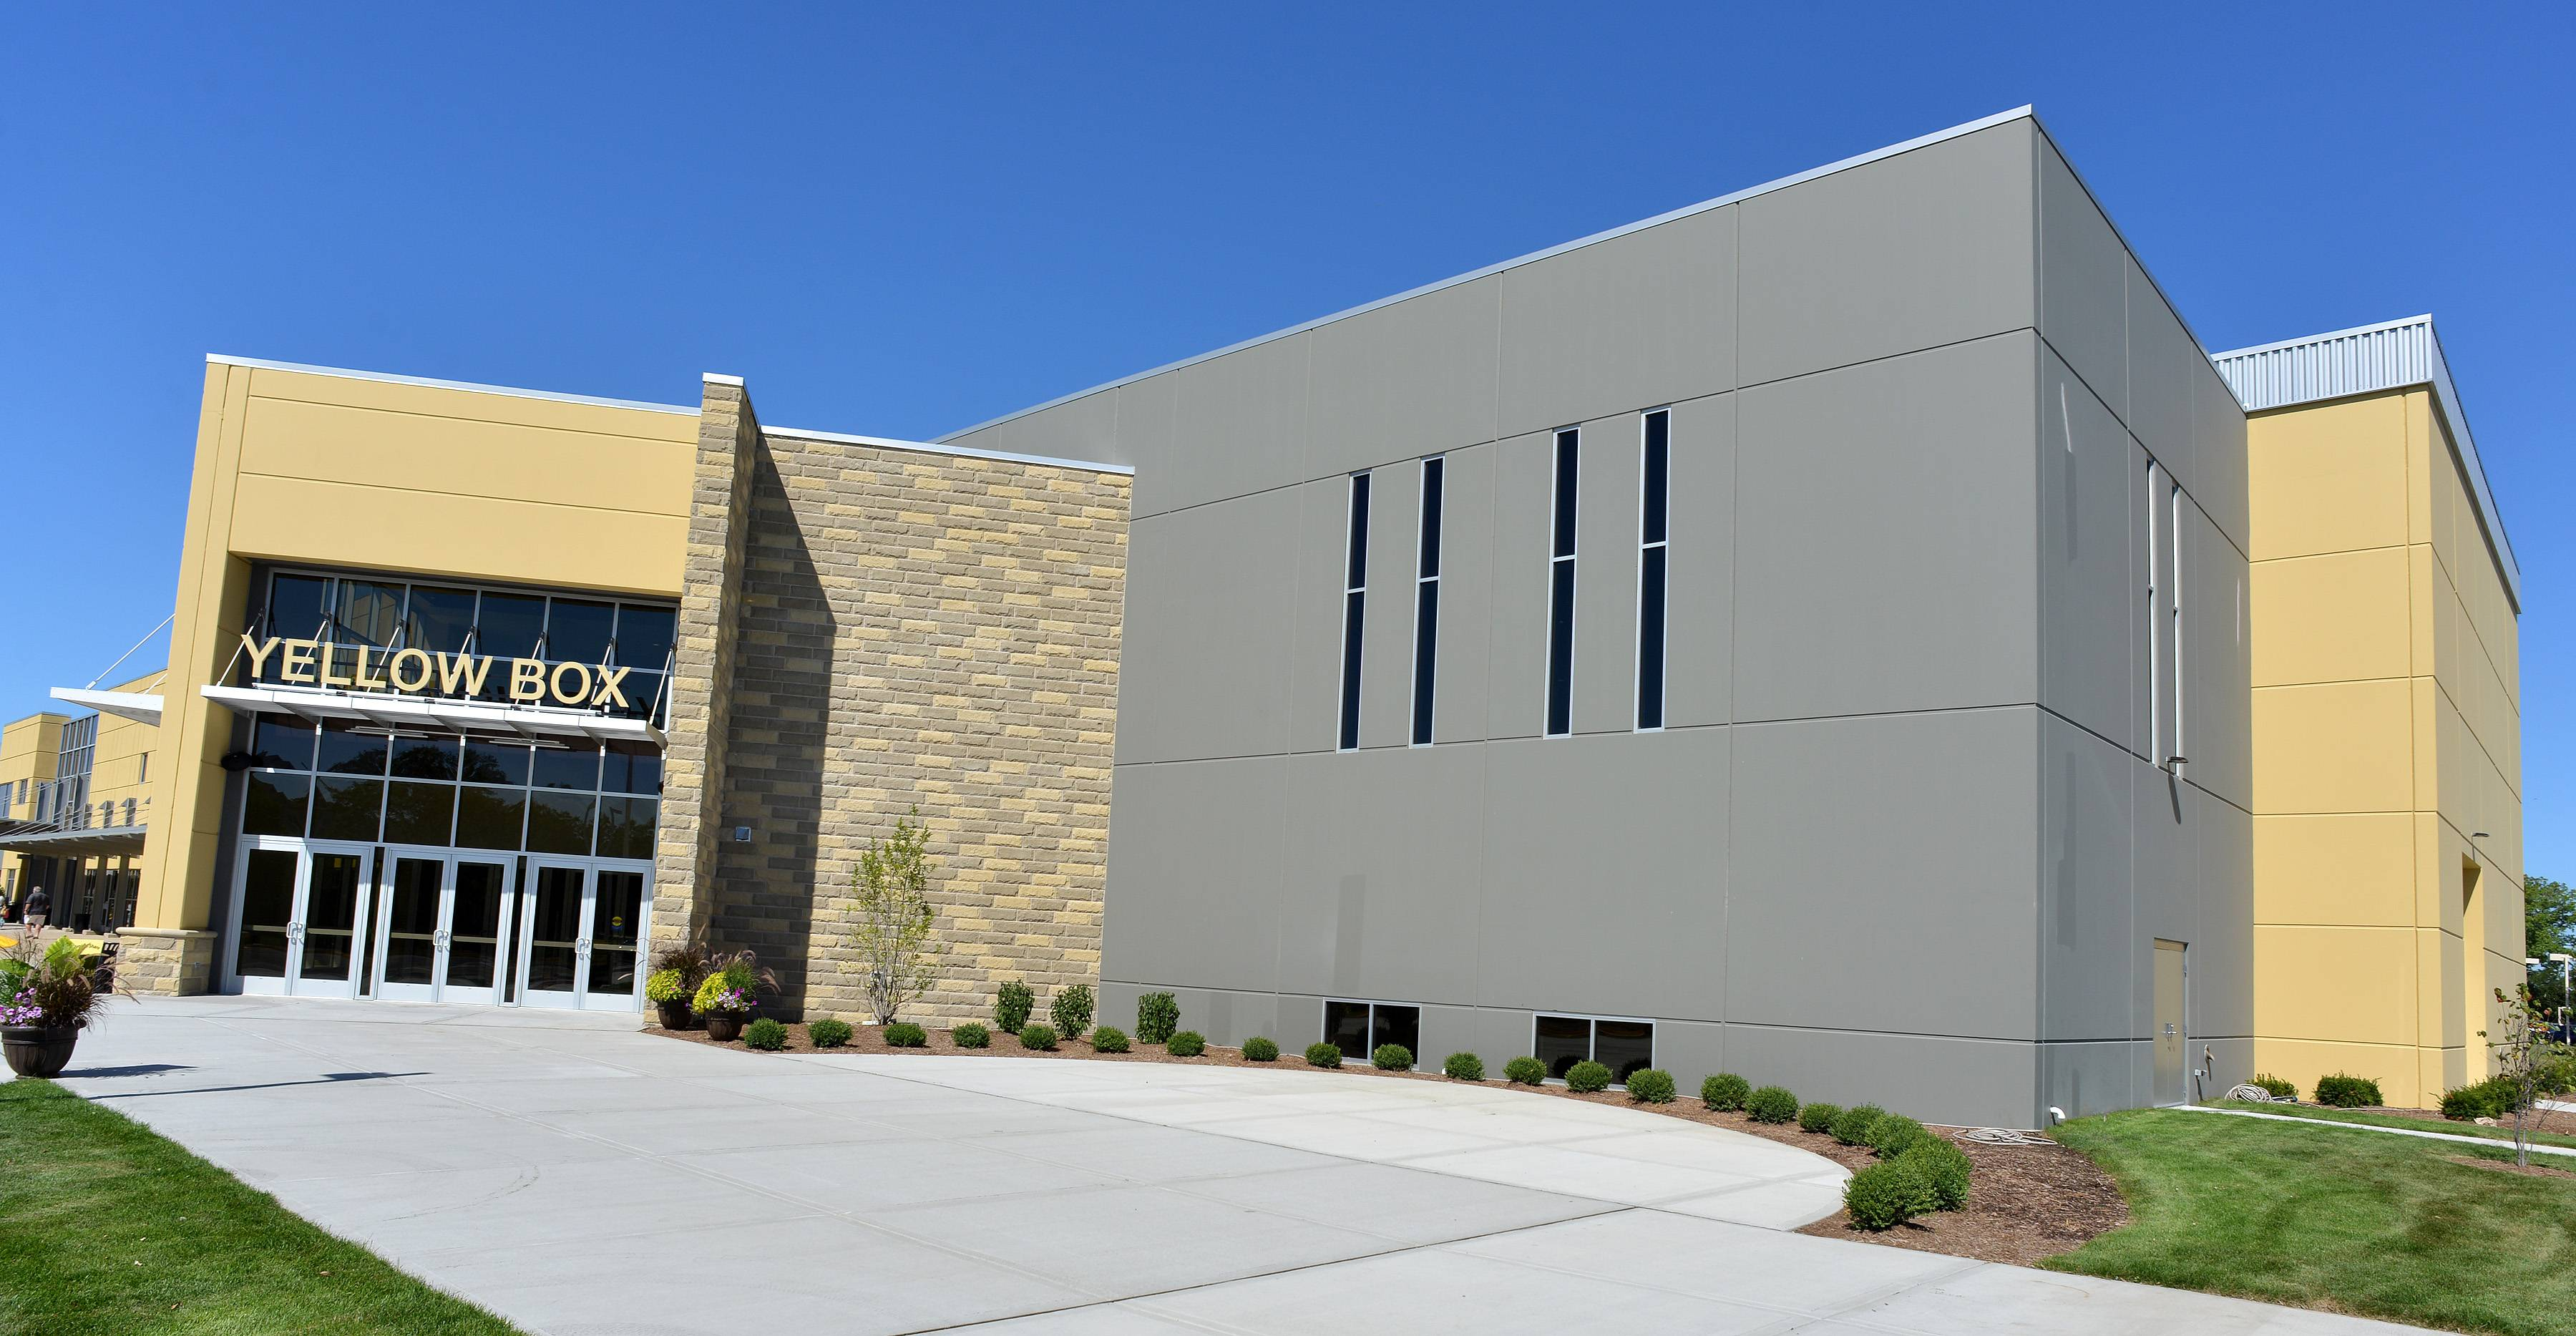 The Yellow Box Community Christian Church in Naperville is offering its new 1,200-seat auditorium and other spaces in its $8 million, 18,000-square-foot addition for use by community groups, Campus Pastor Shawn Williams said.